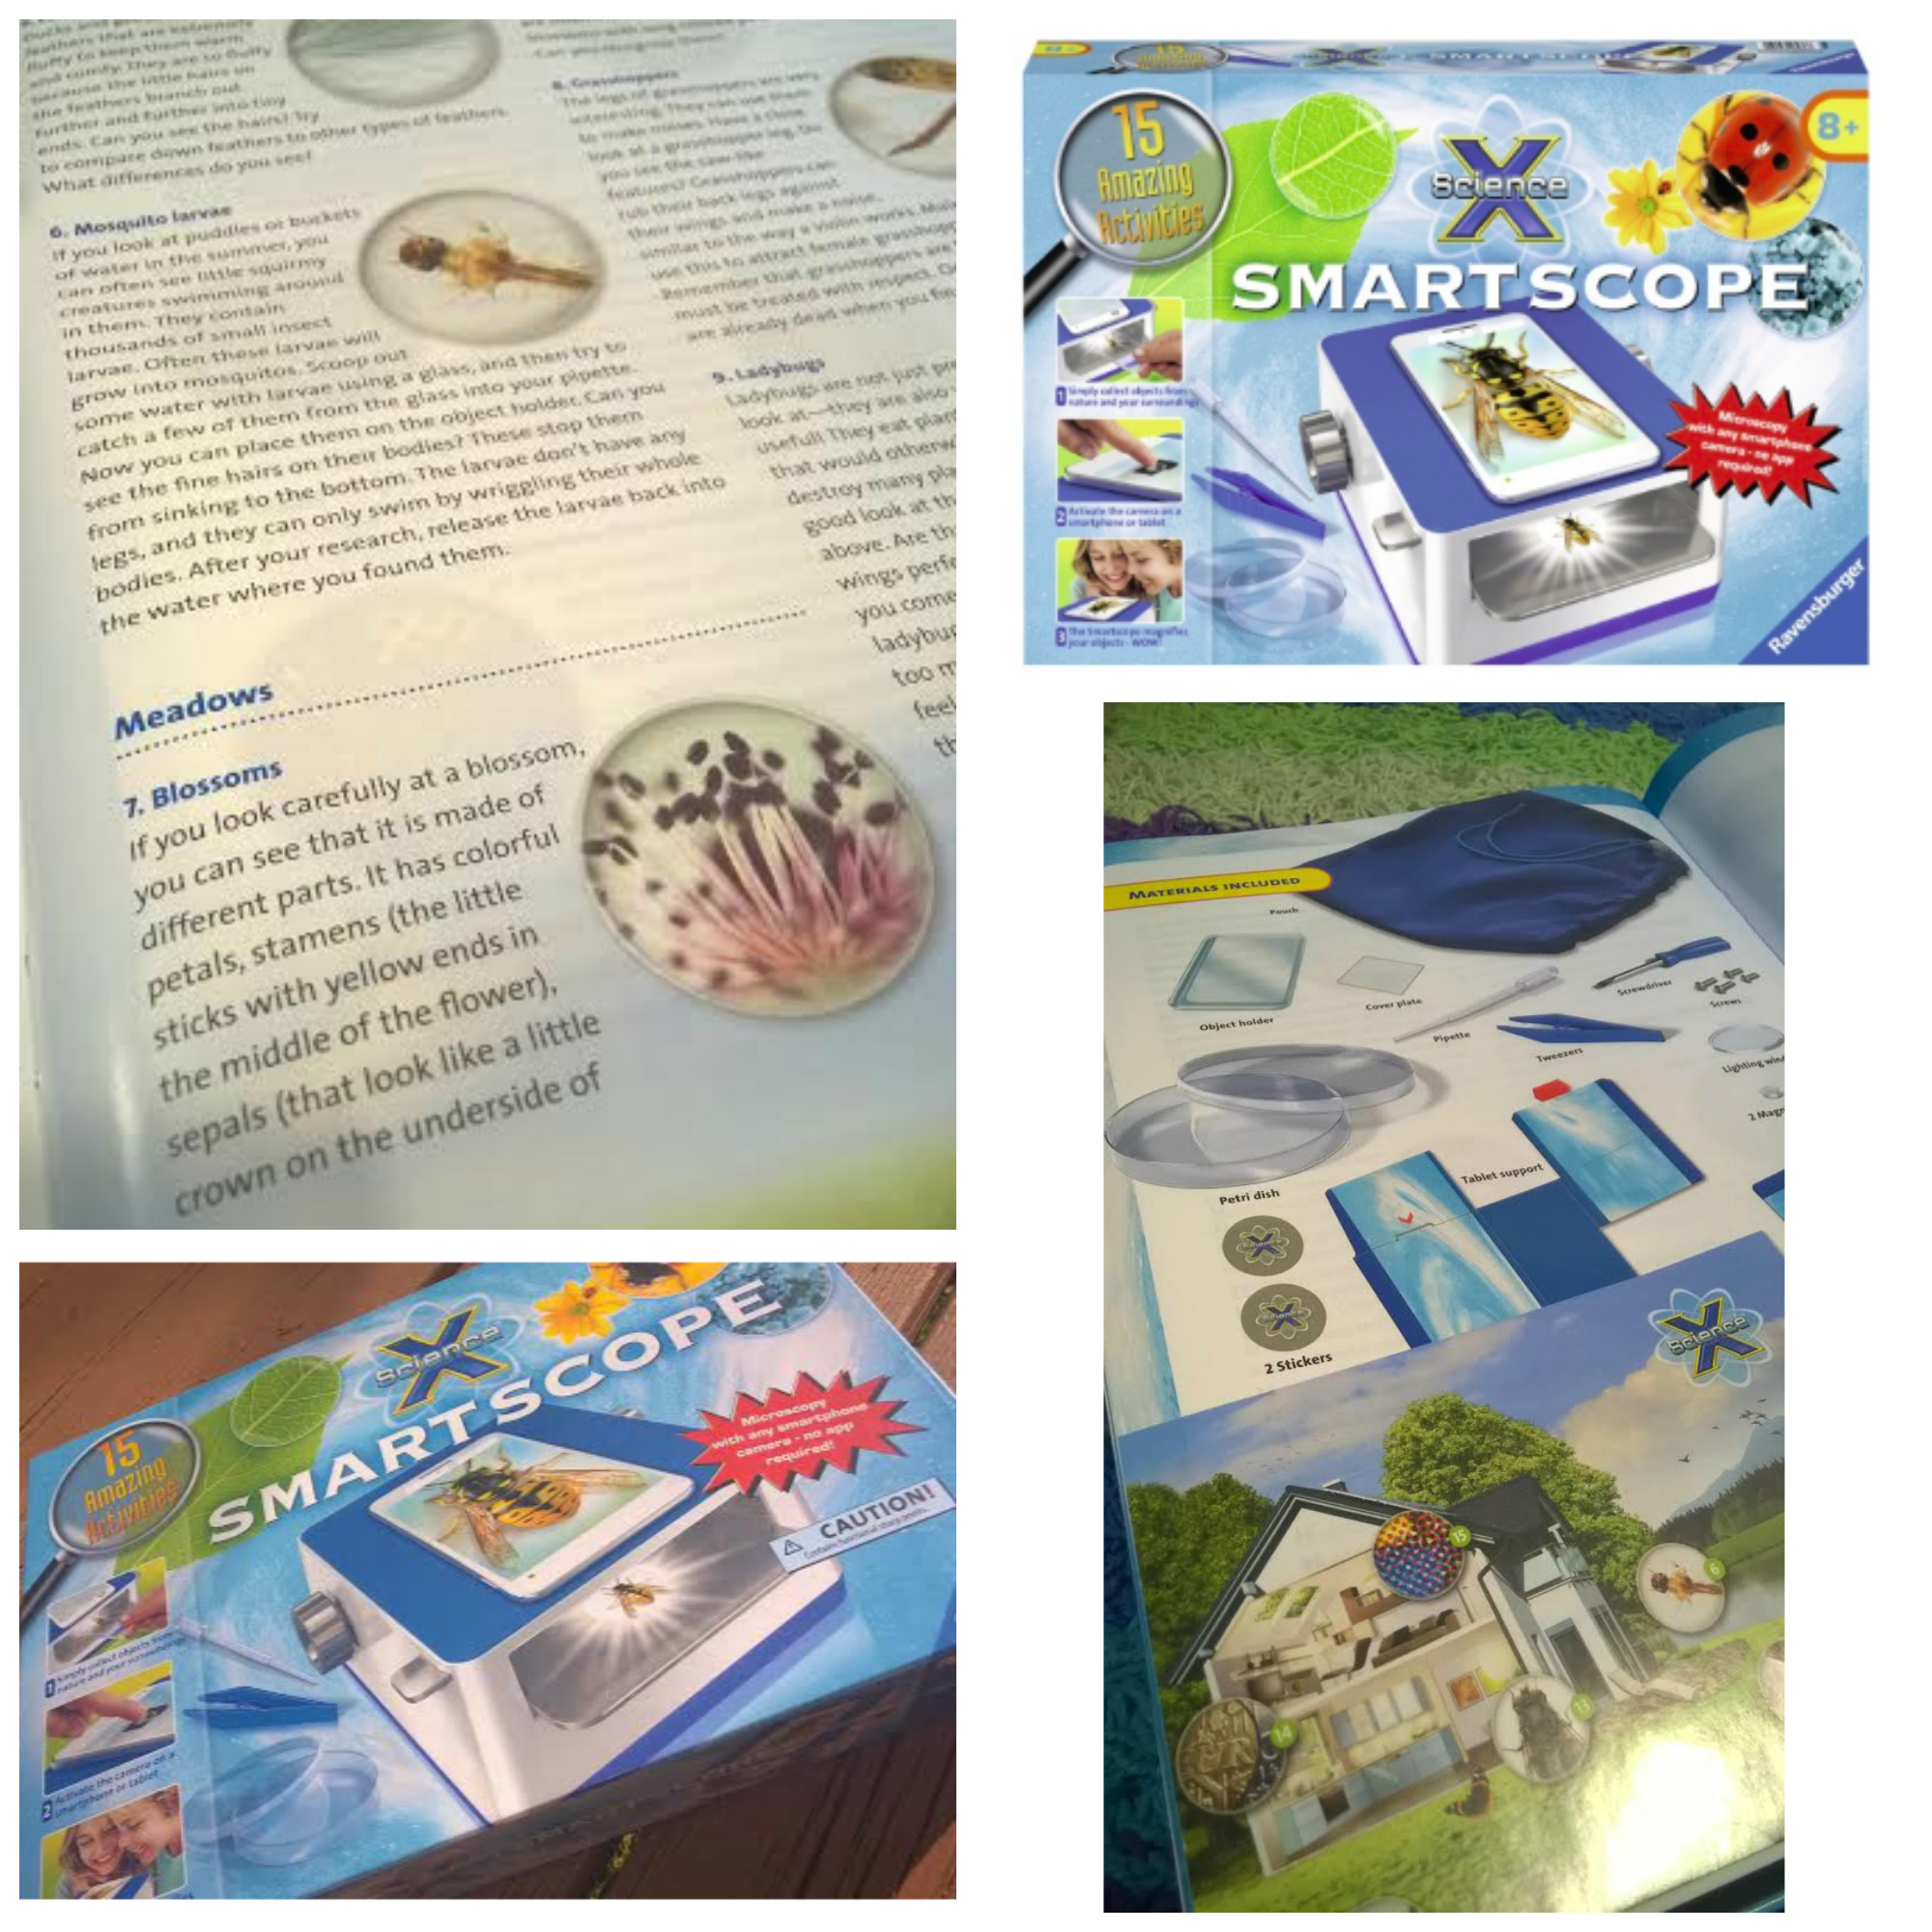 Ravensburger Smartscope: Amazing microscope for kids with some extra perks!